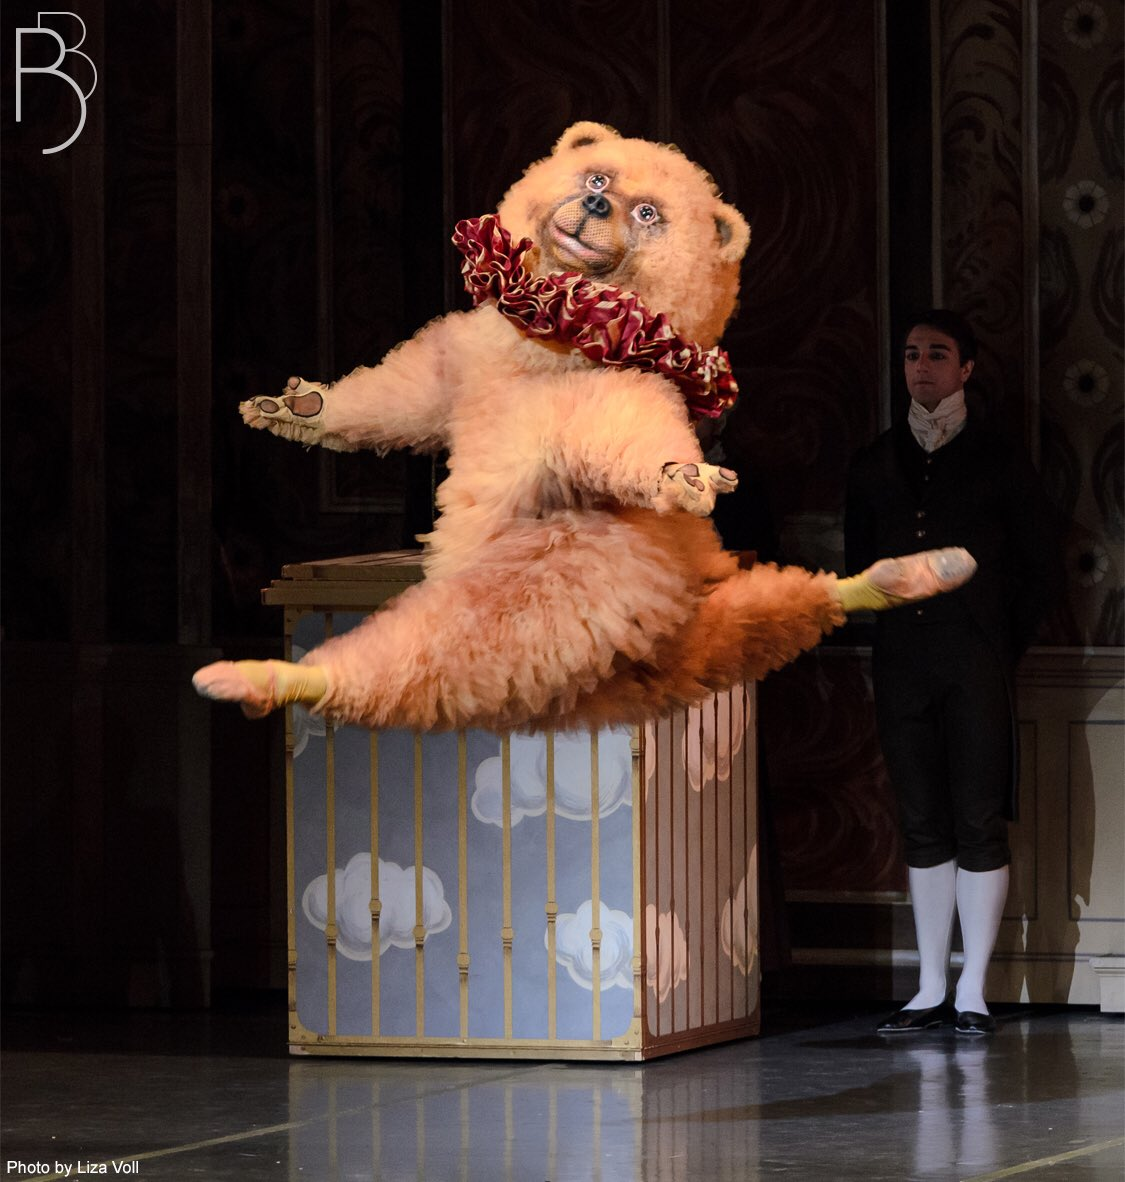 We hear #BBNutcracker Bear is a favorite among our fans in Japan! Here's a #TBT for our friends across the world!